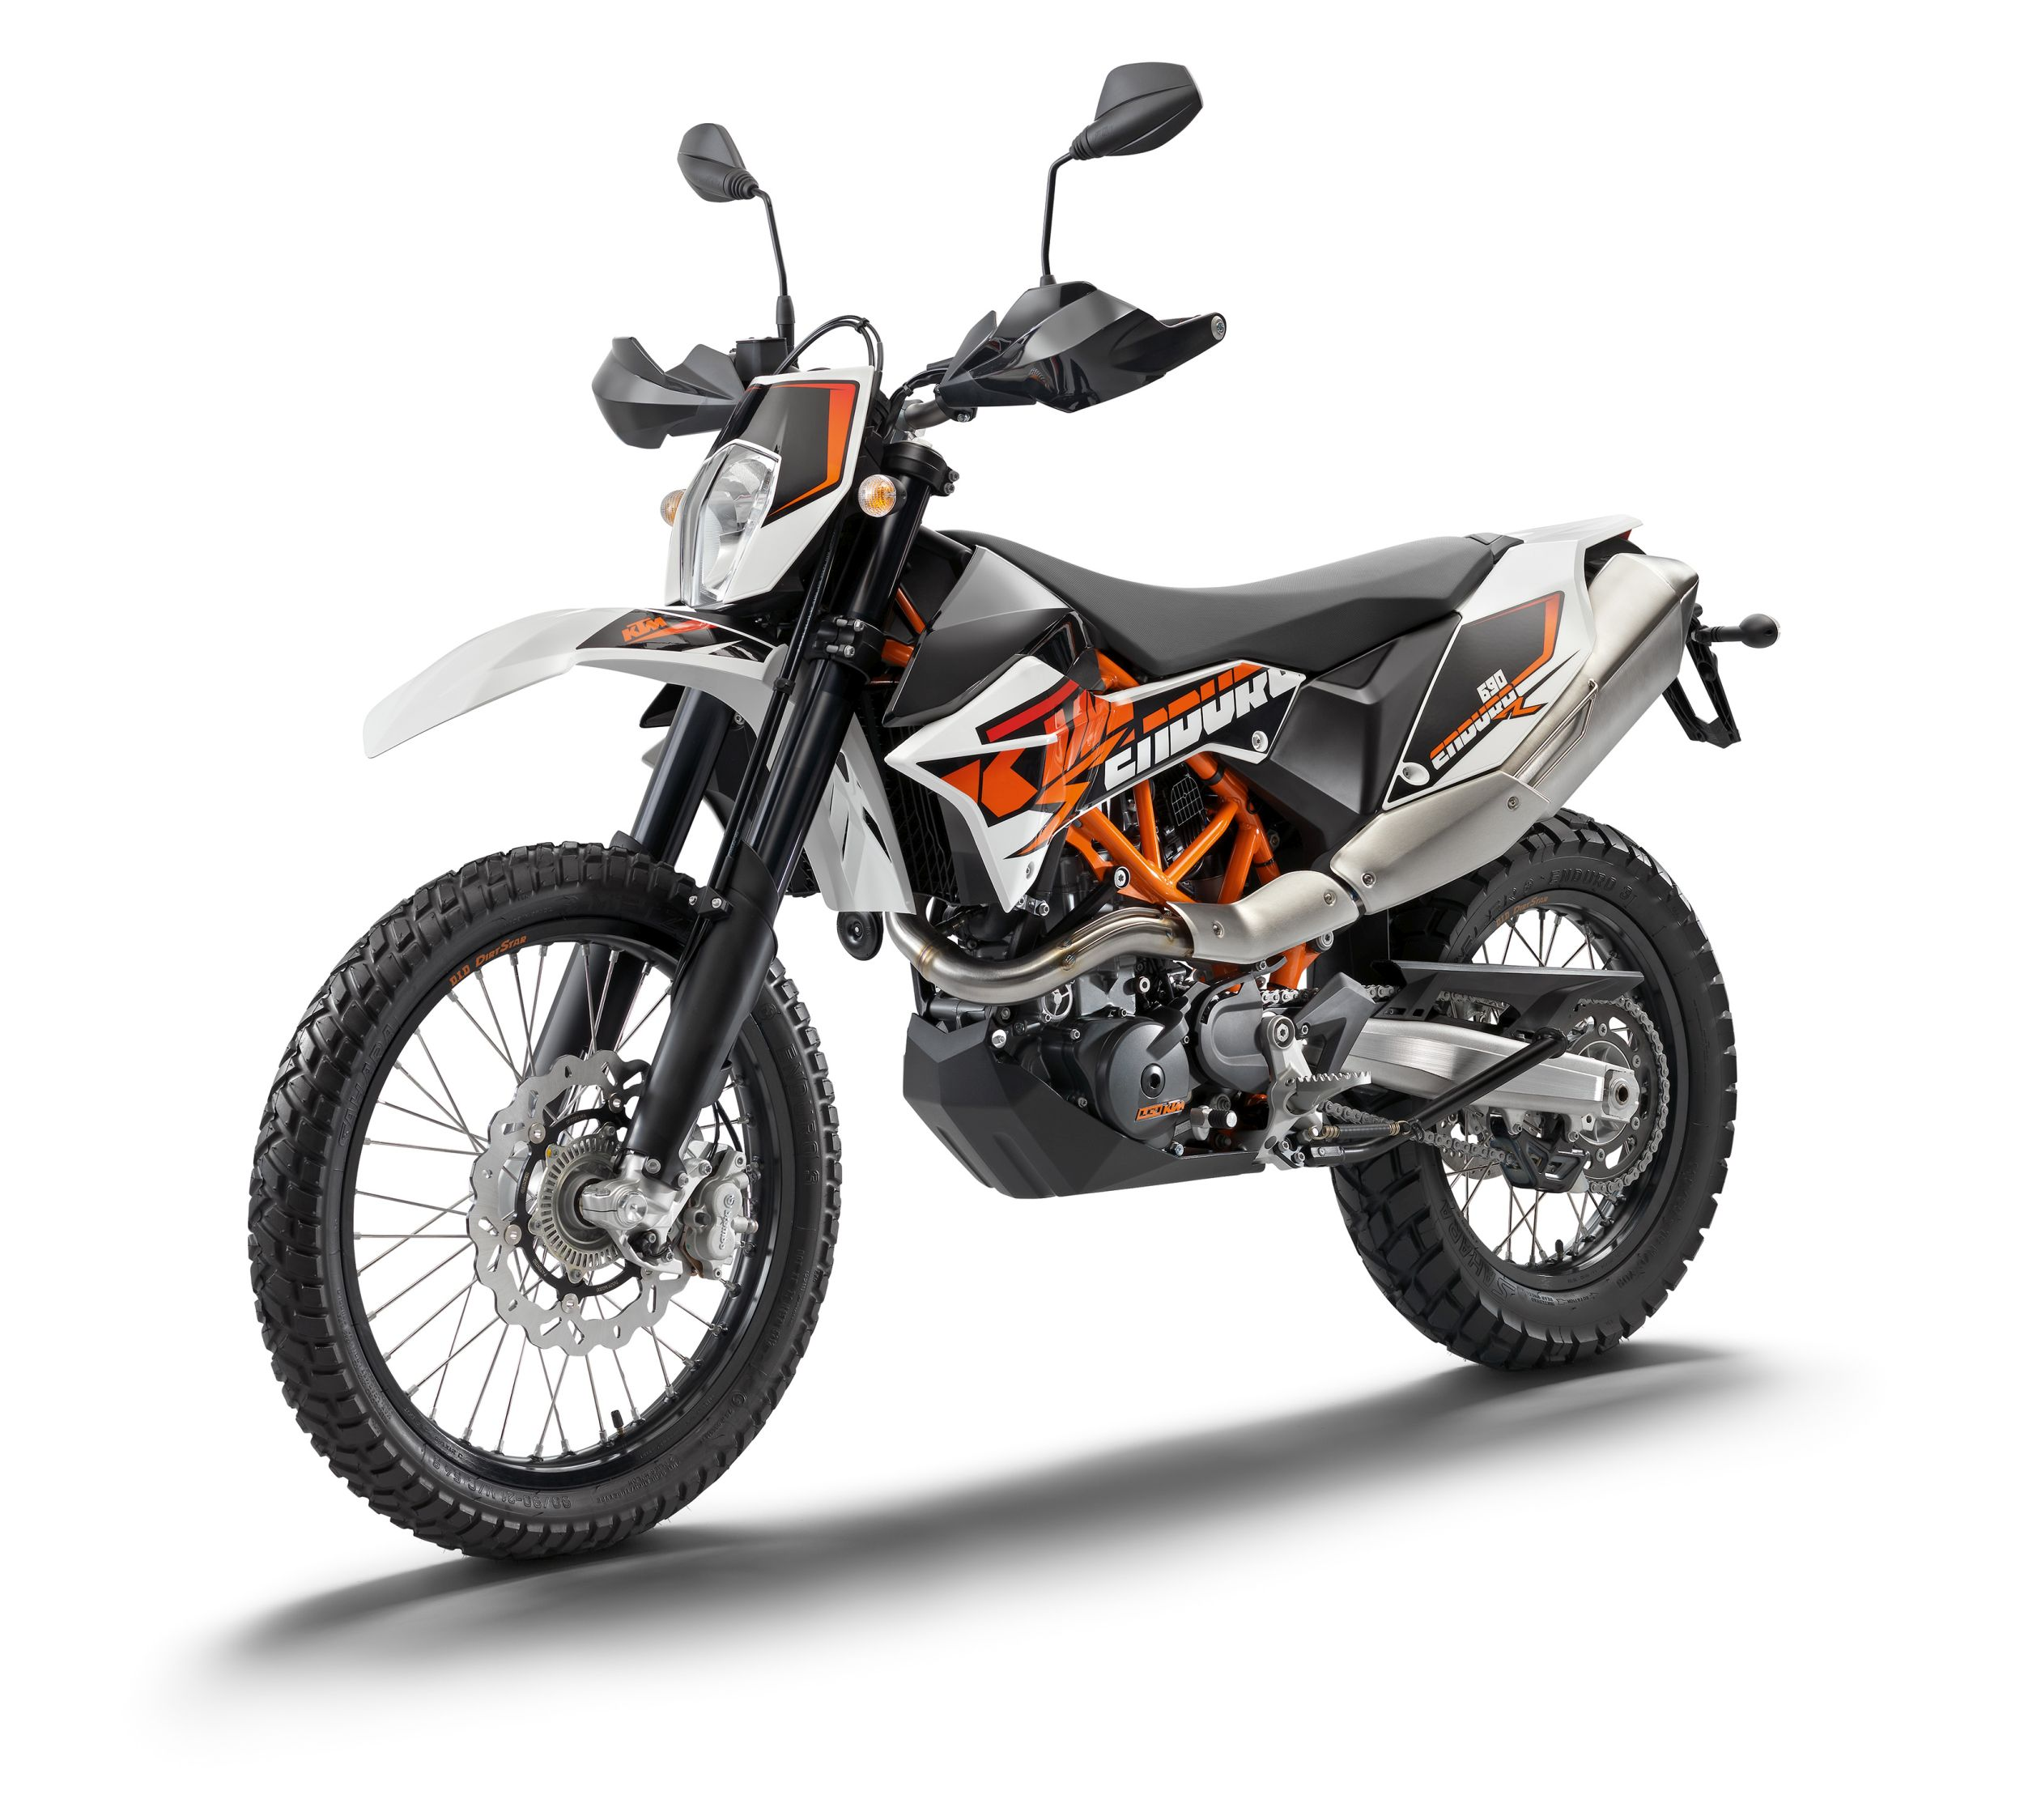 gebrauchte und neue ktm 690 enduro r motorr der kaufen. Black Bedroom Furniture Sets. Home Design Ideas